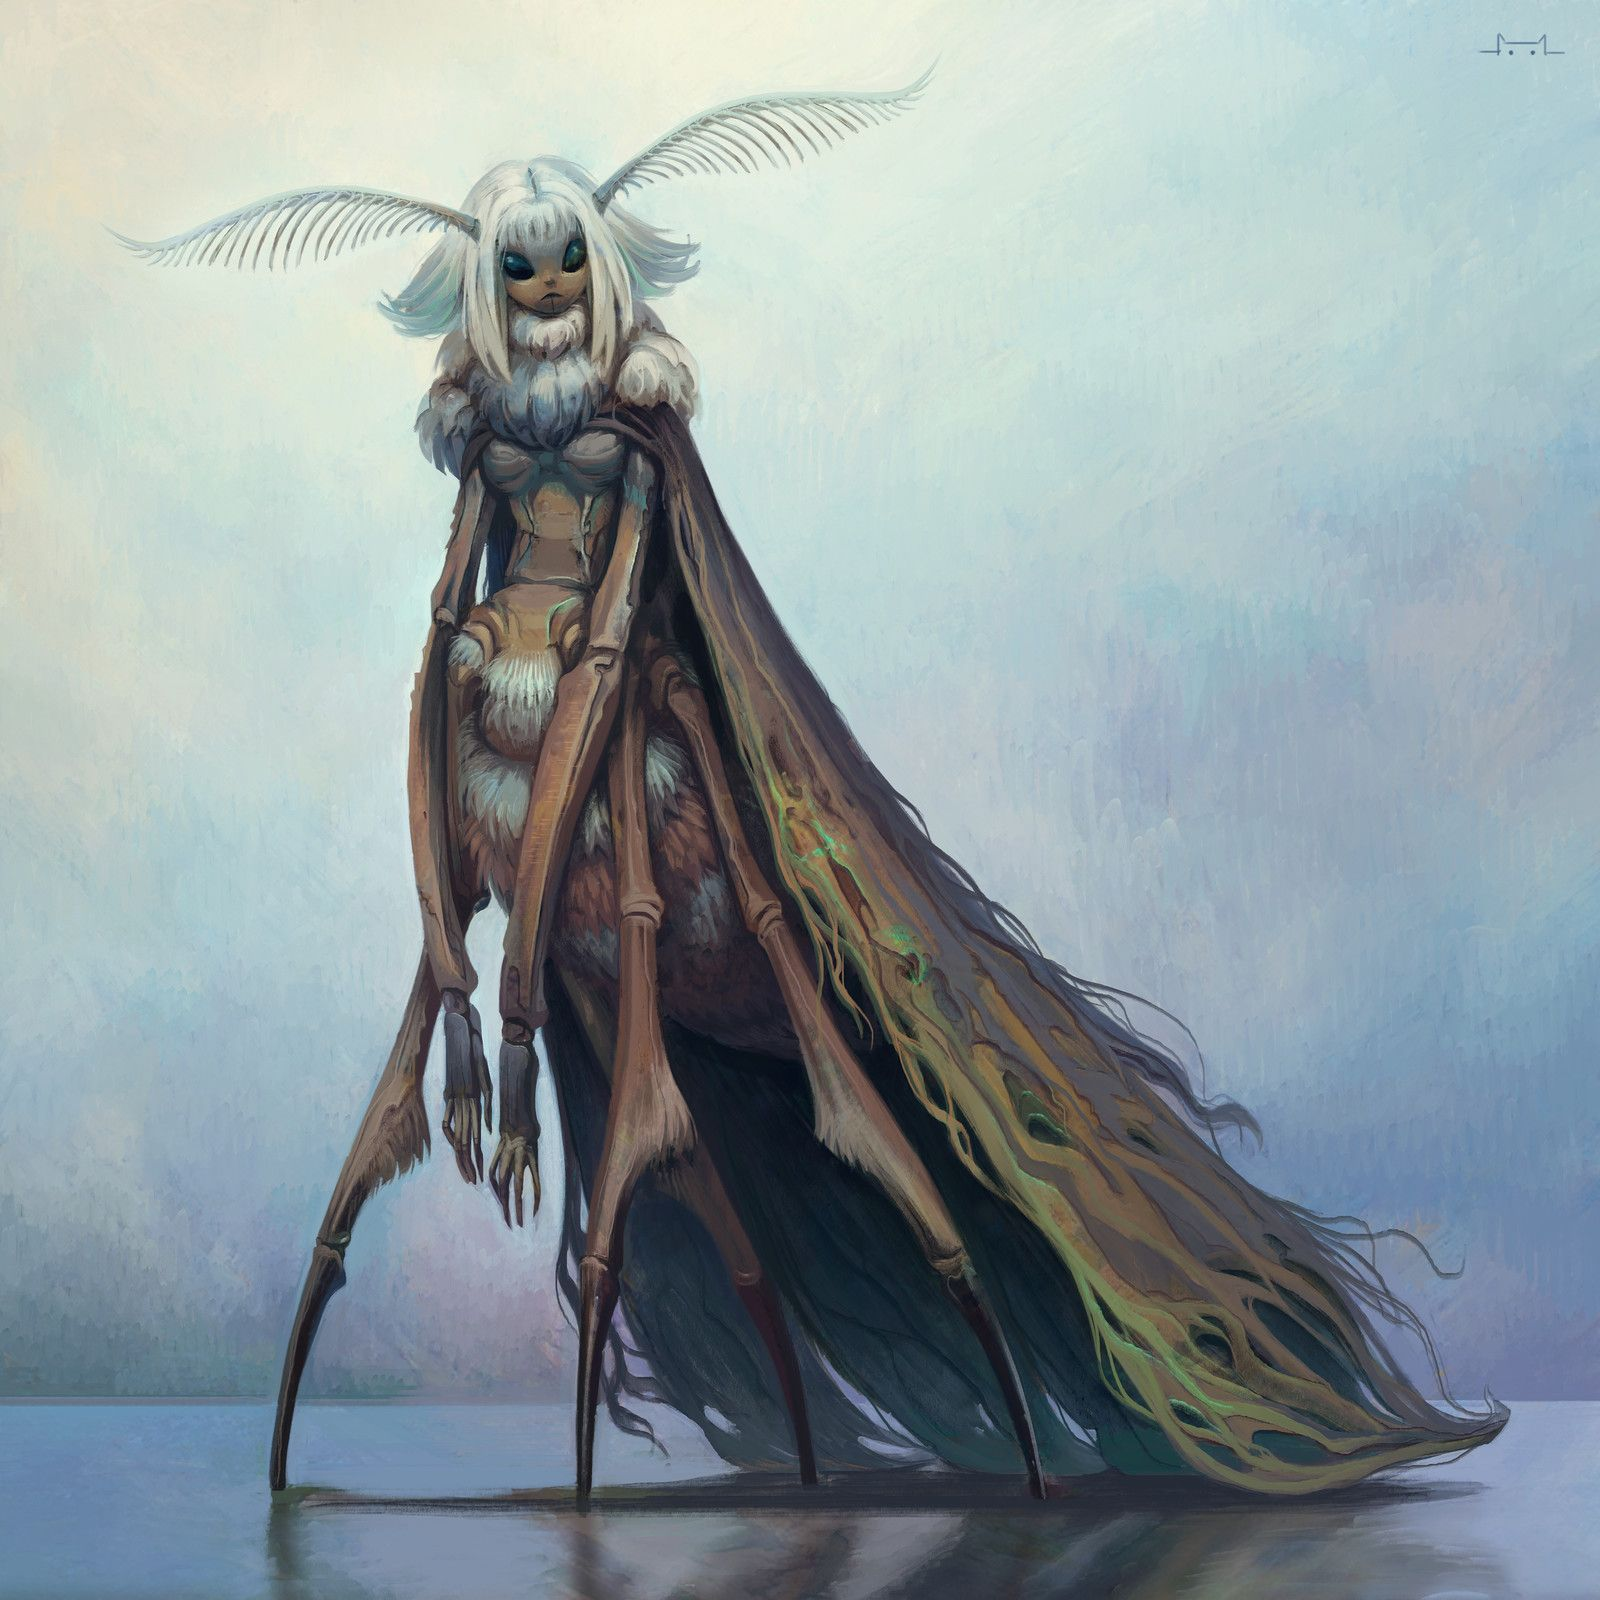 Pin By Jessica Harbison On Dragons And Othet Creatures In